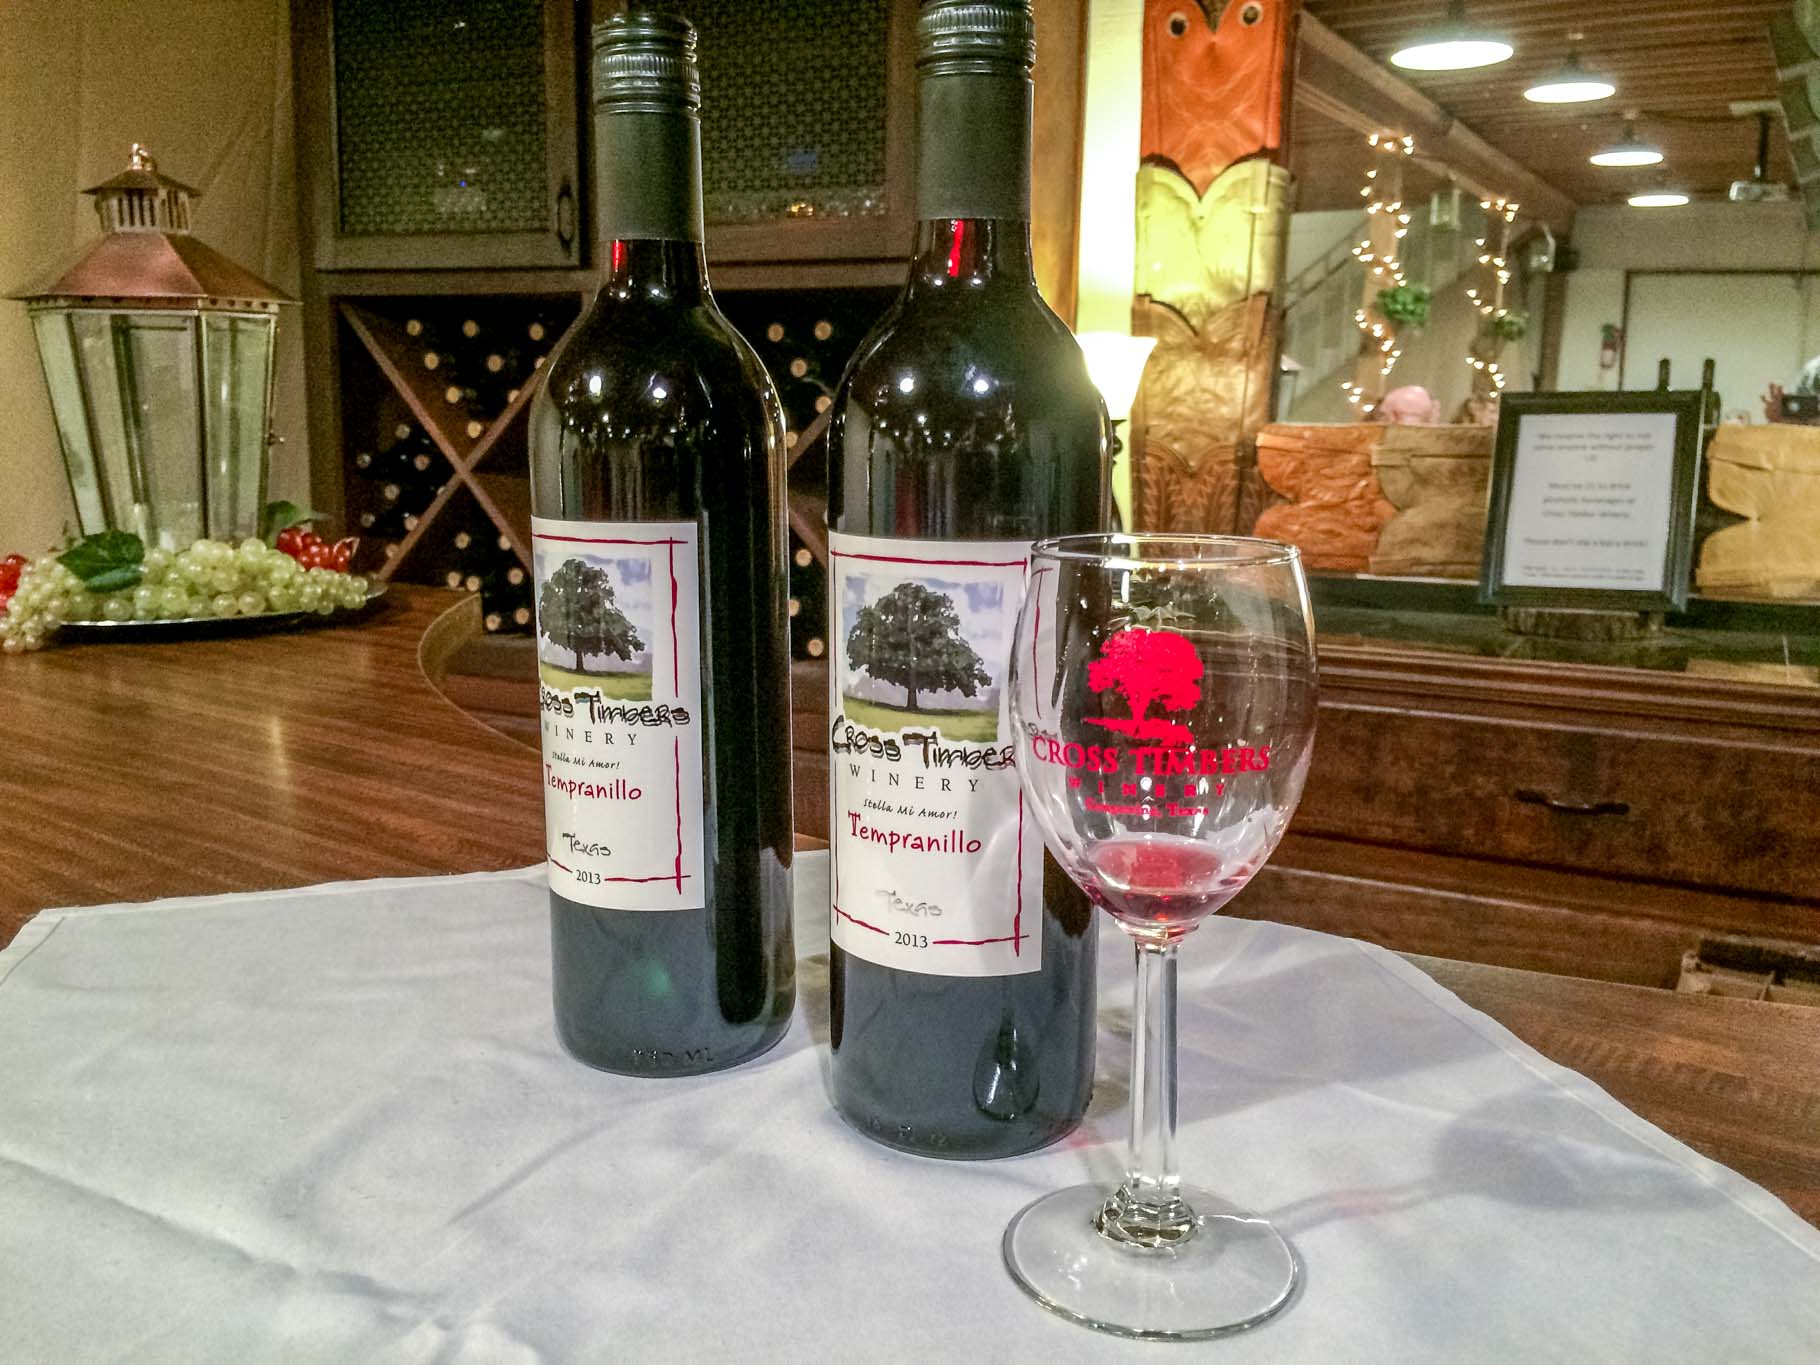 Wine bottles and glass at Cross Timbers Winery